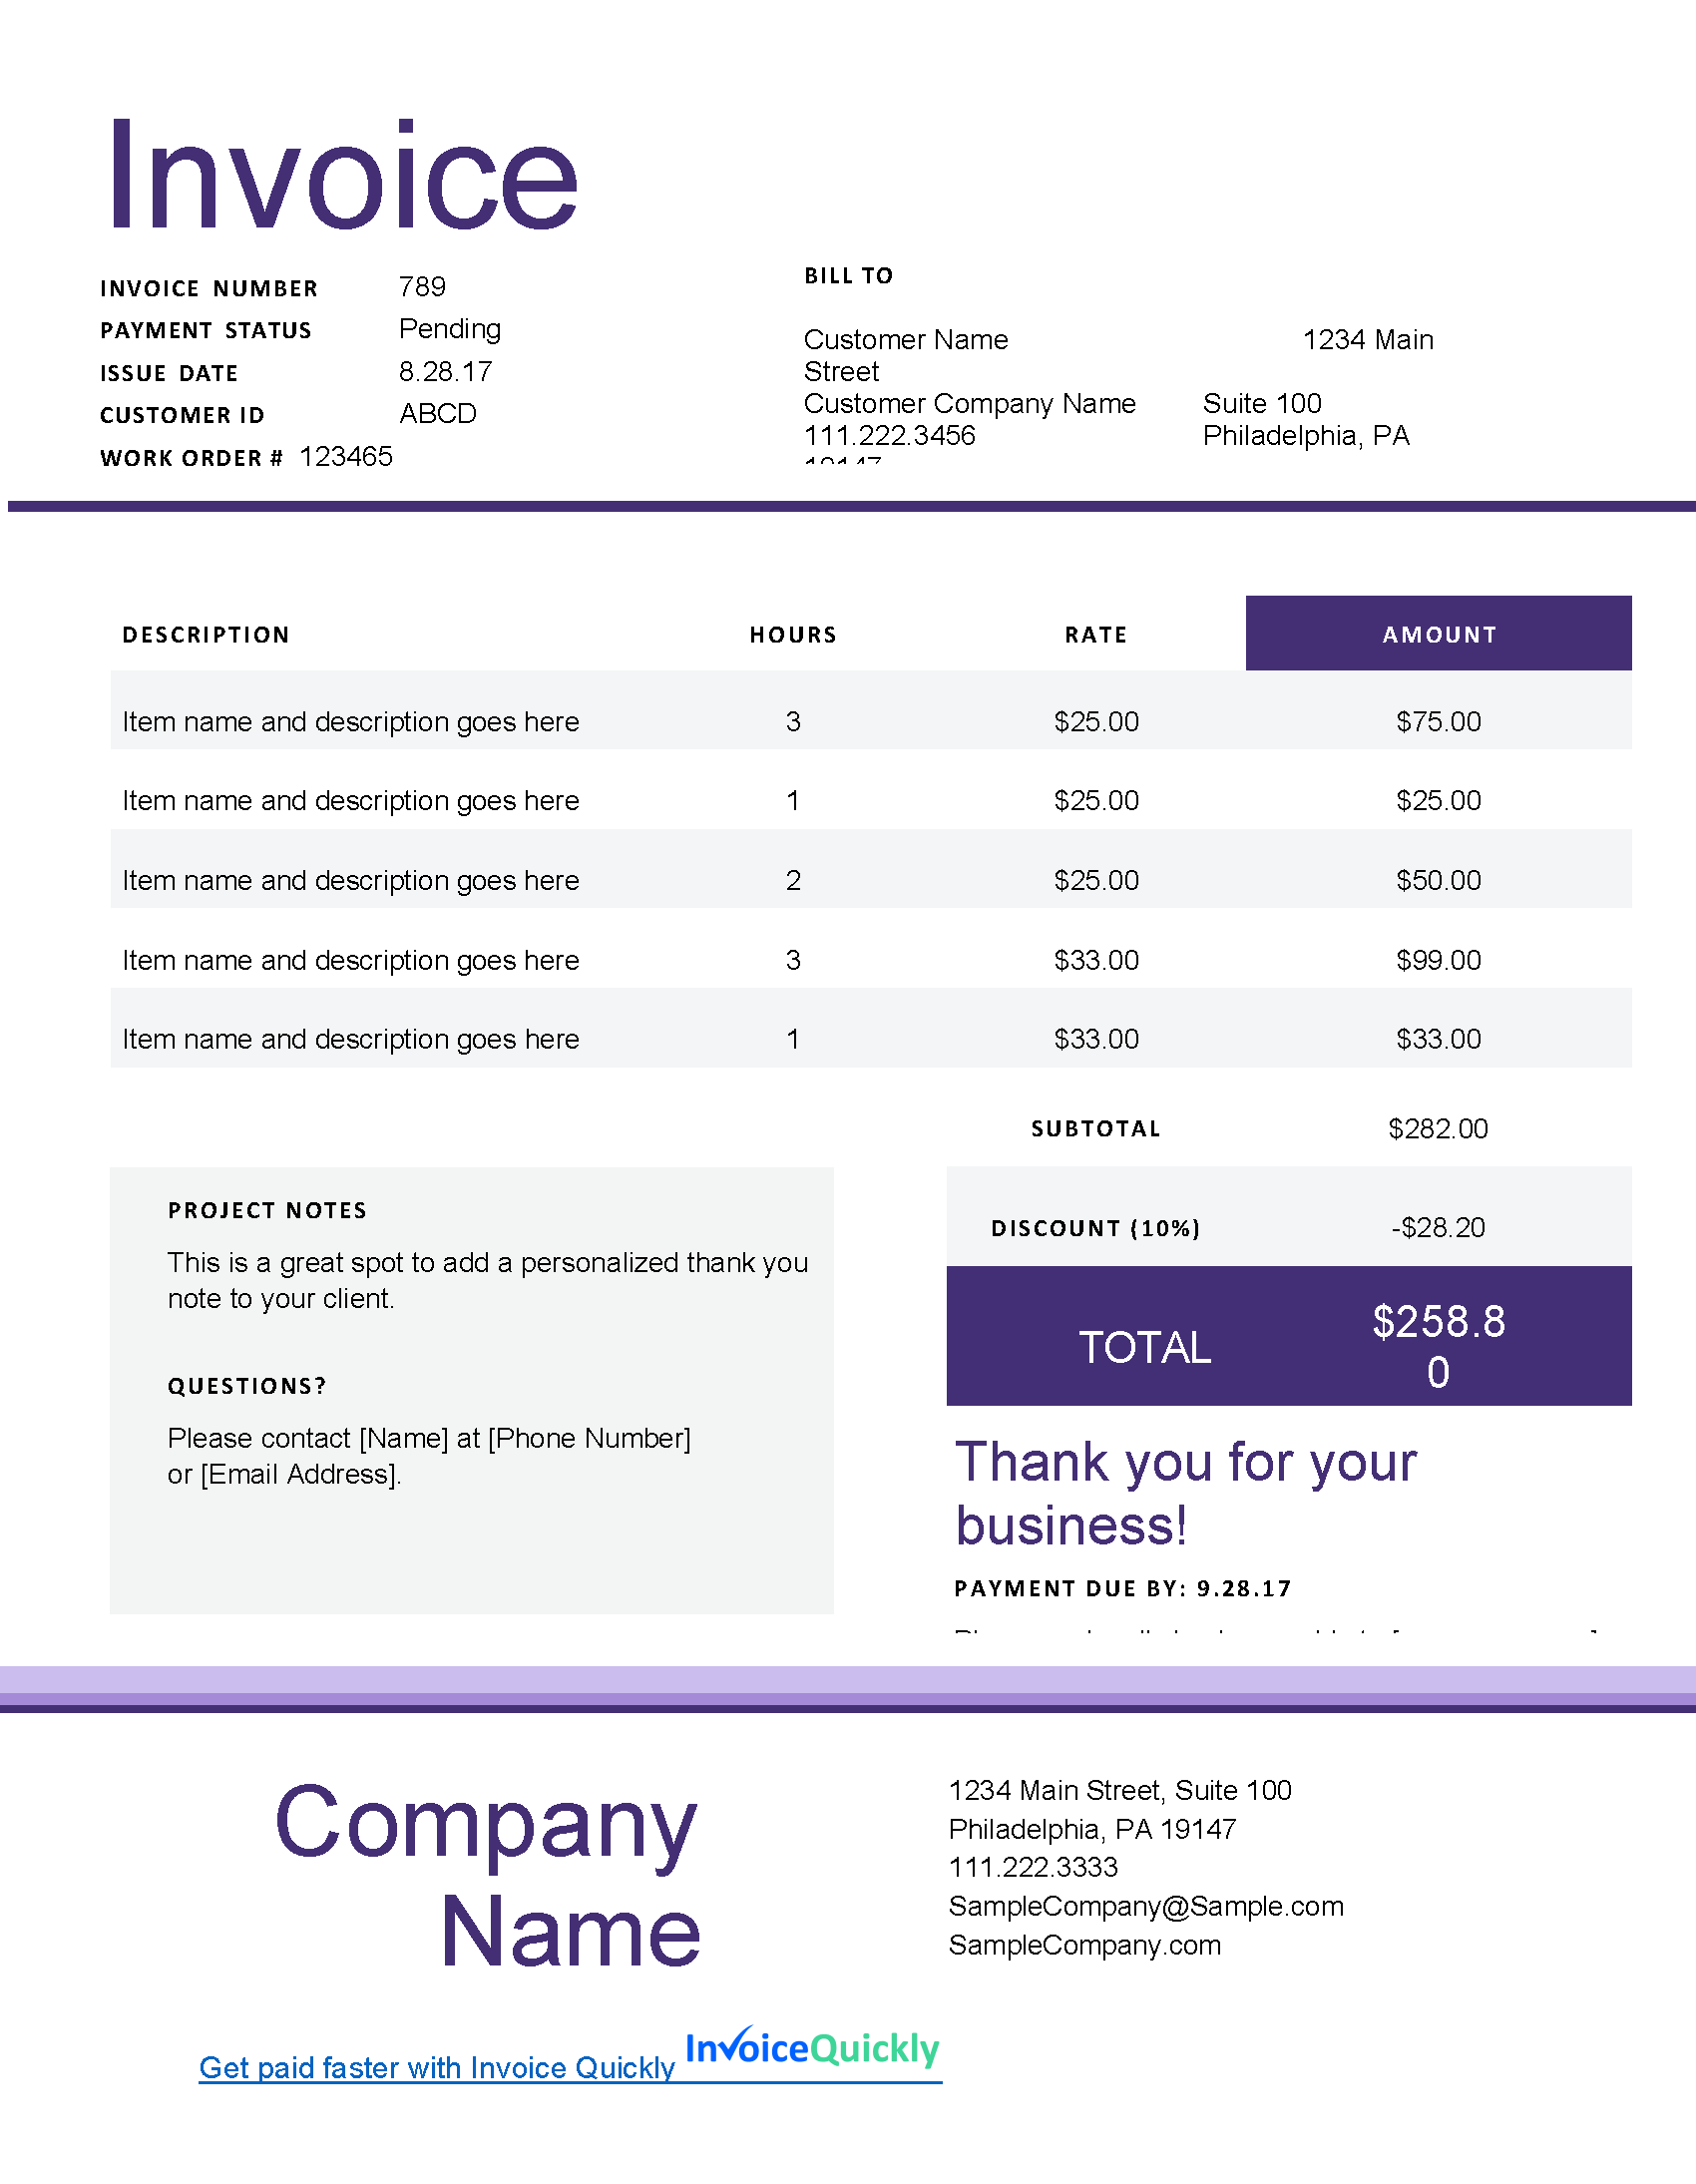 Microsoft Word Invoice Template Download For Your Needs